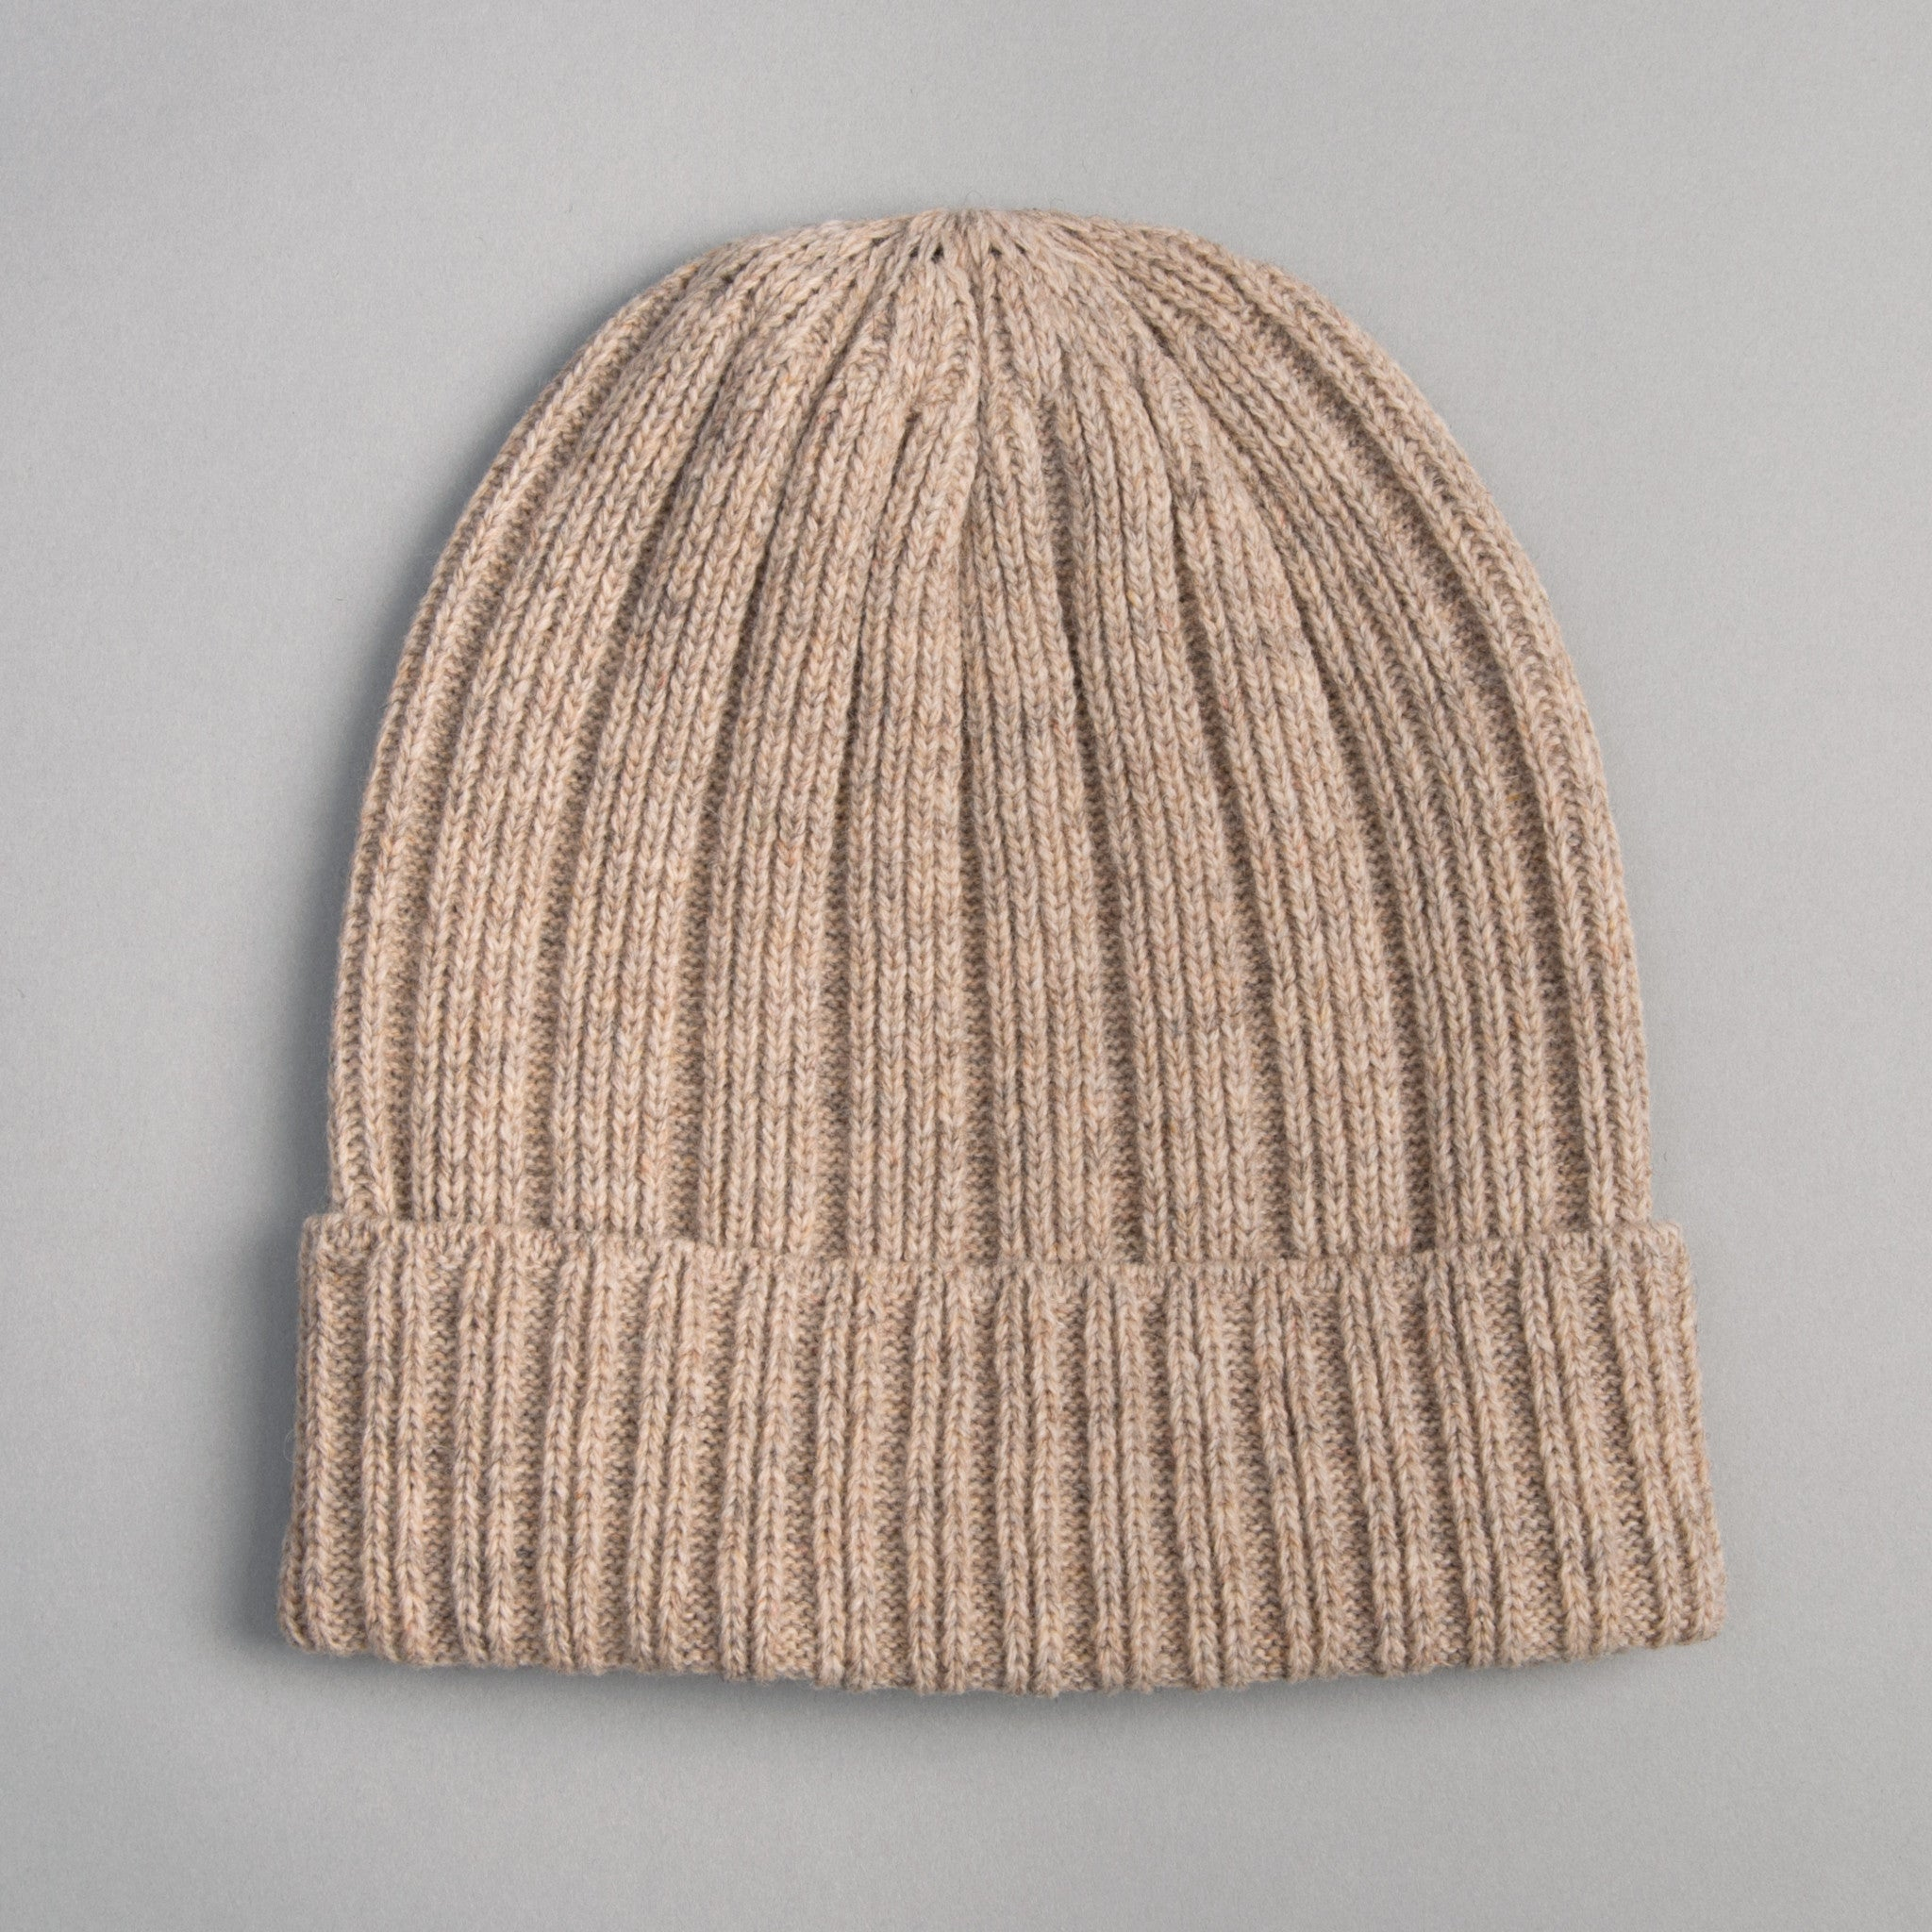 The Hill-Side - Knit Cap, Oatmeal Grey Irish Wool - KC2-06